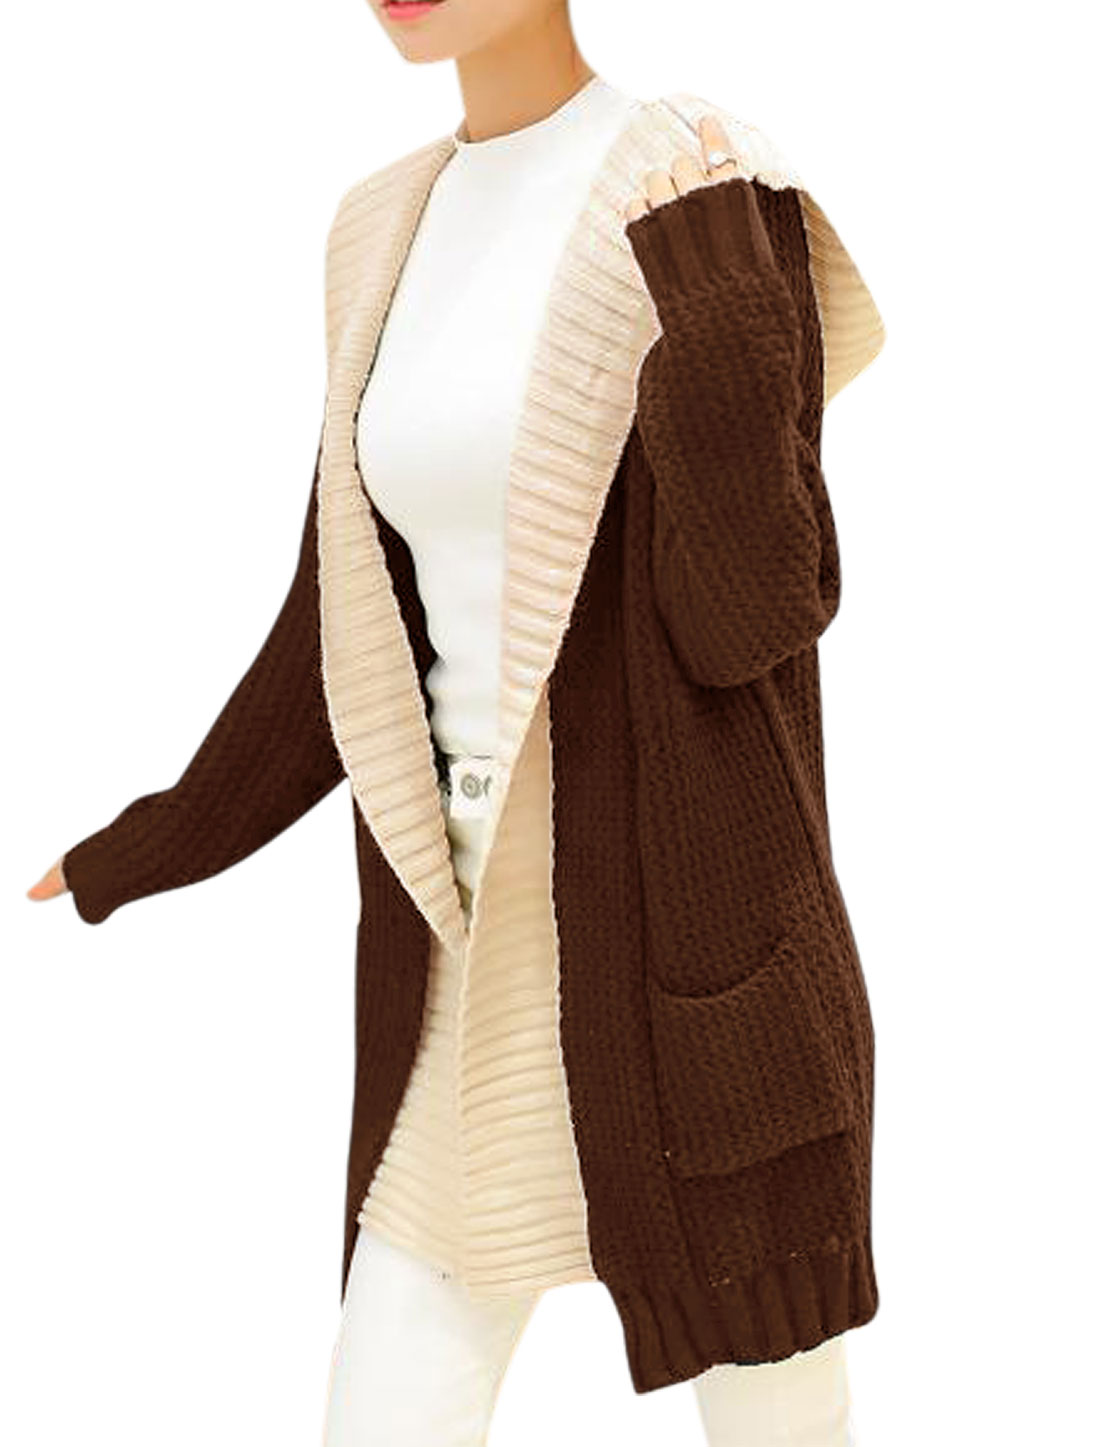 Women Coffee Hooded Splicing False Two Pieces Long Cardigan Sweater XS